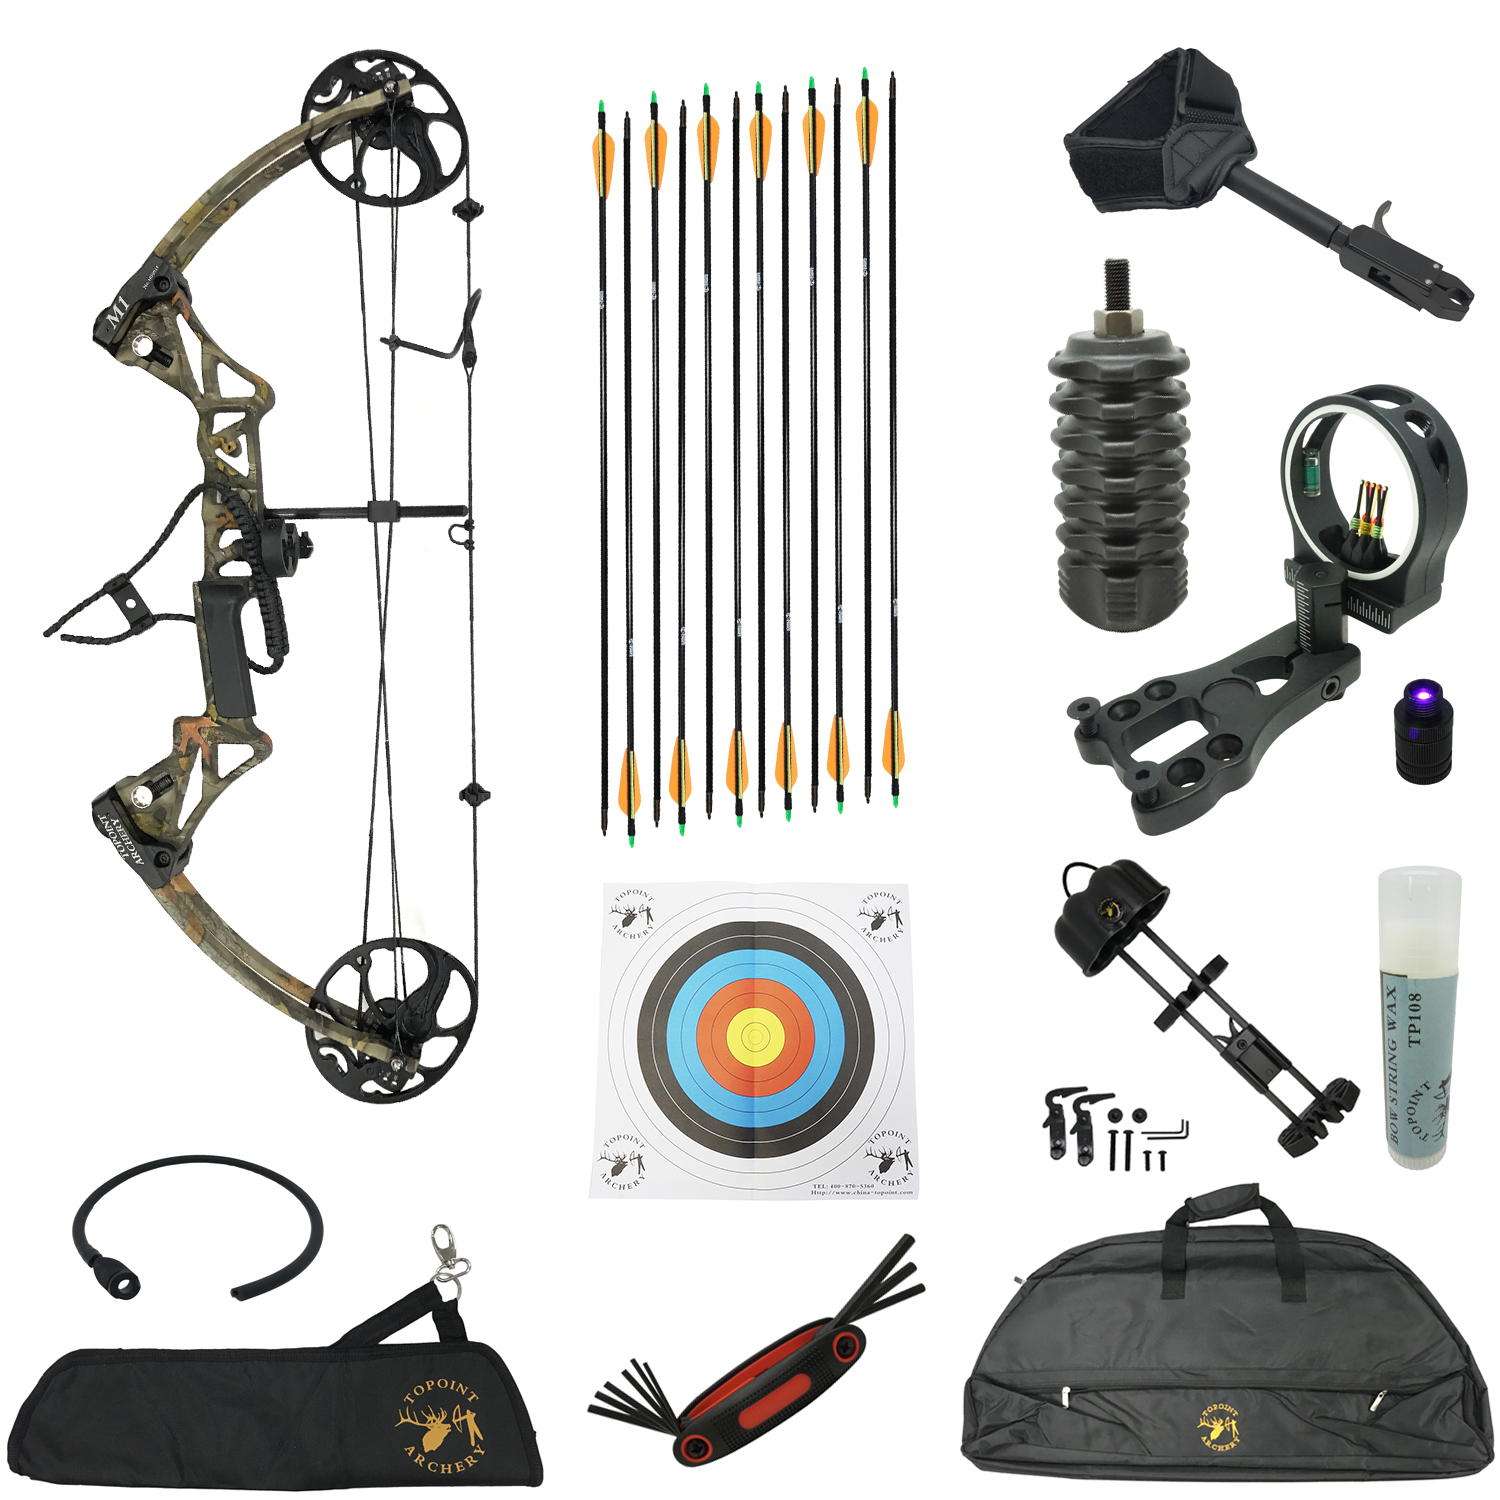 Safari Choice Compound Bow Beginner Package, Camouflage